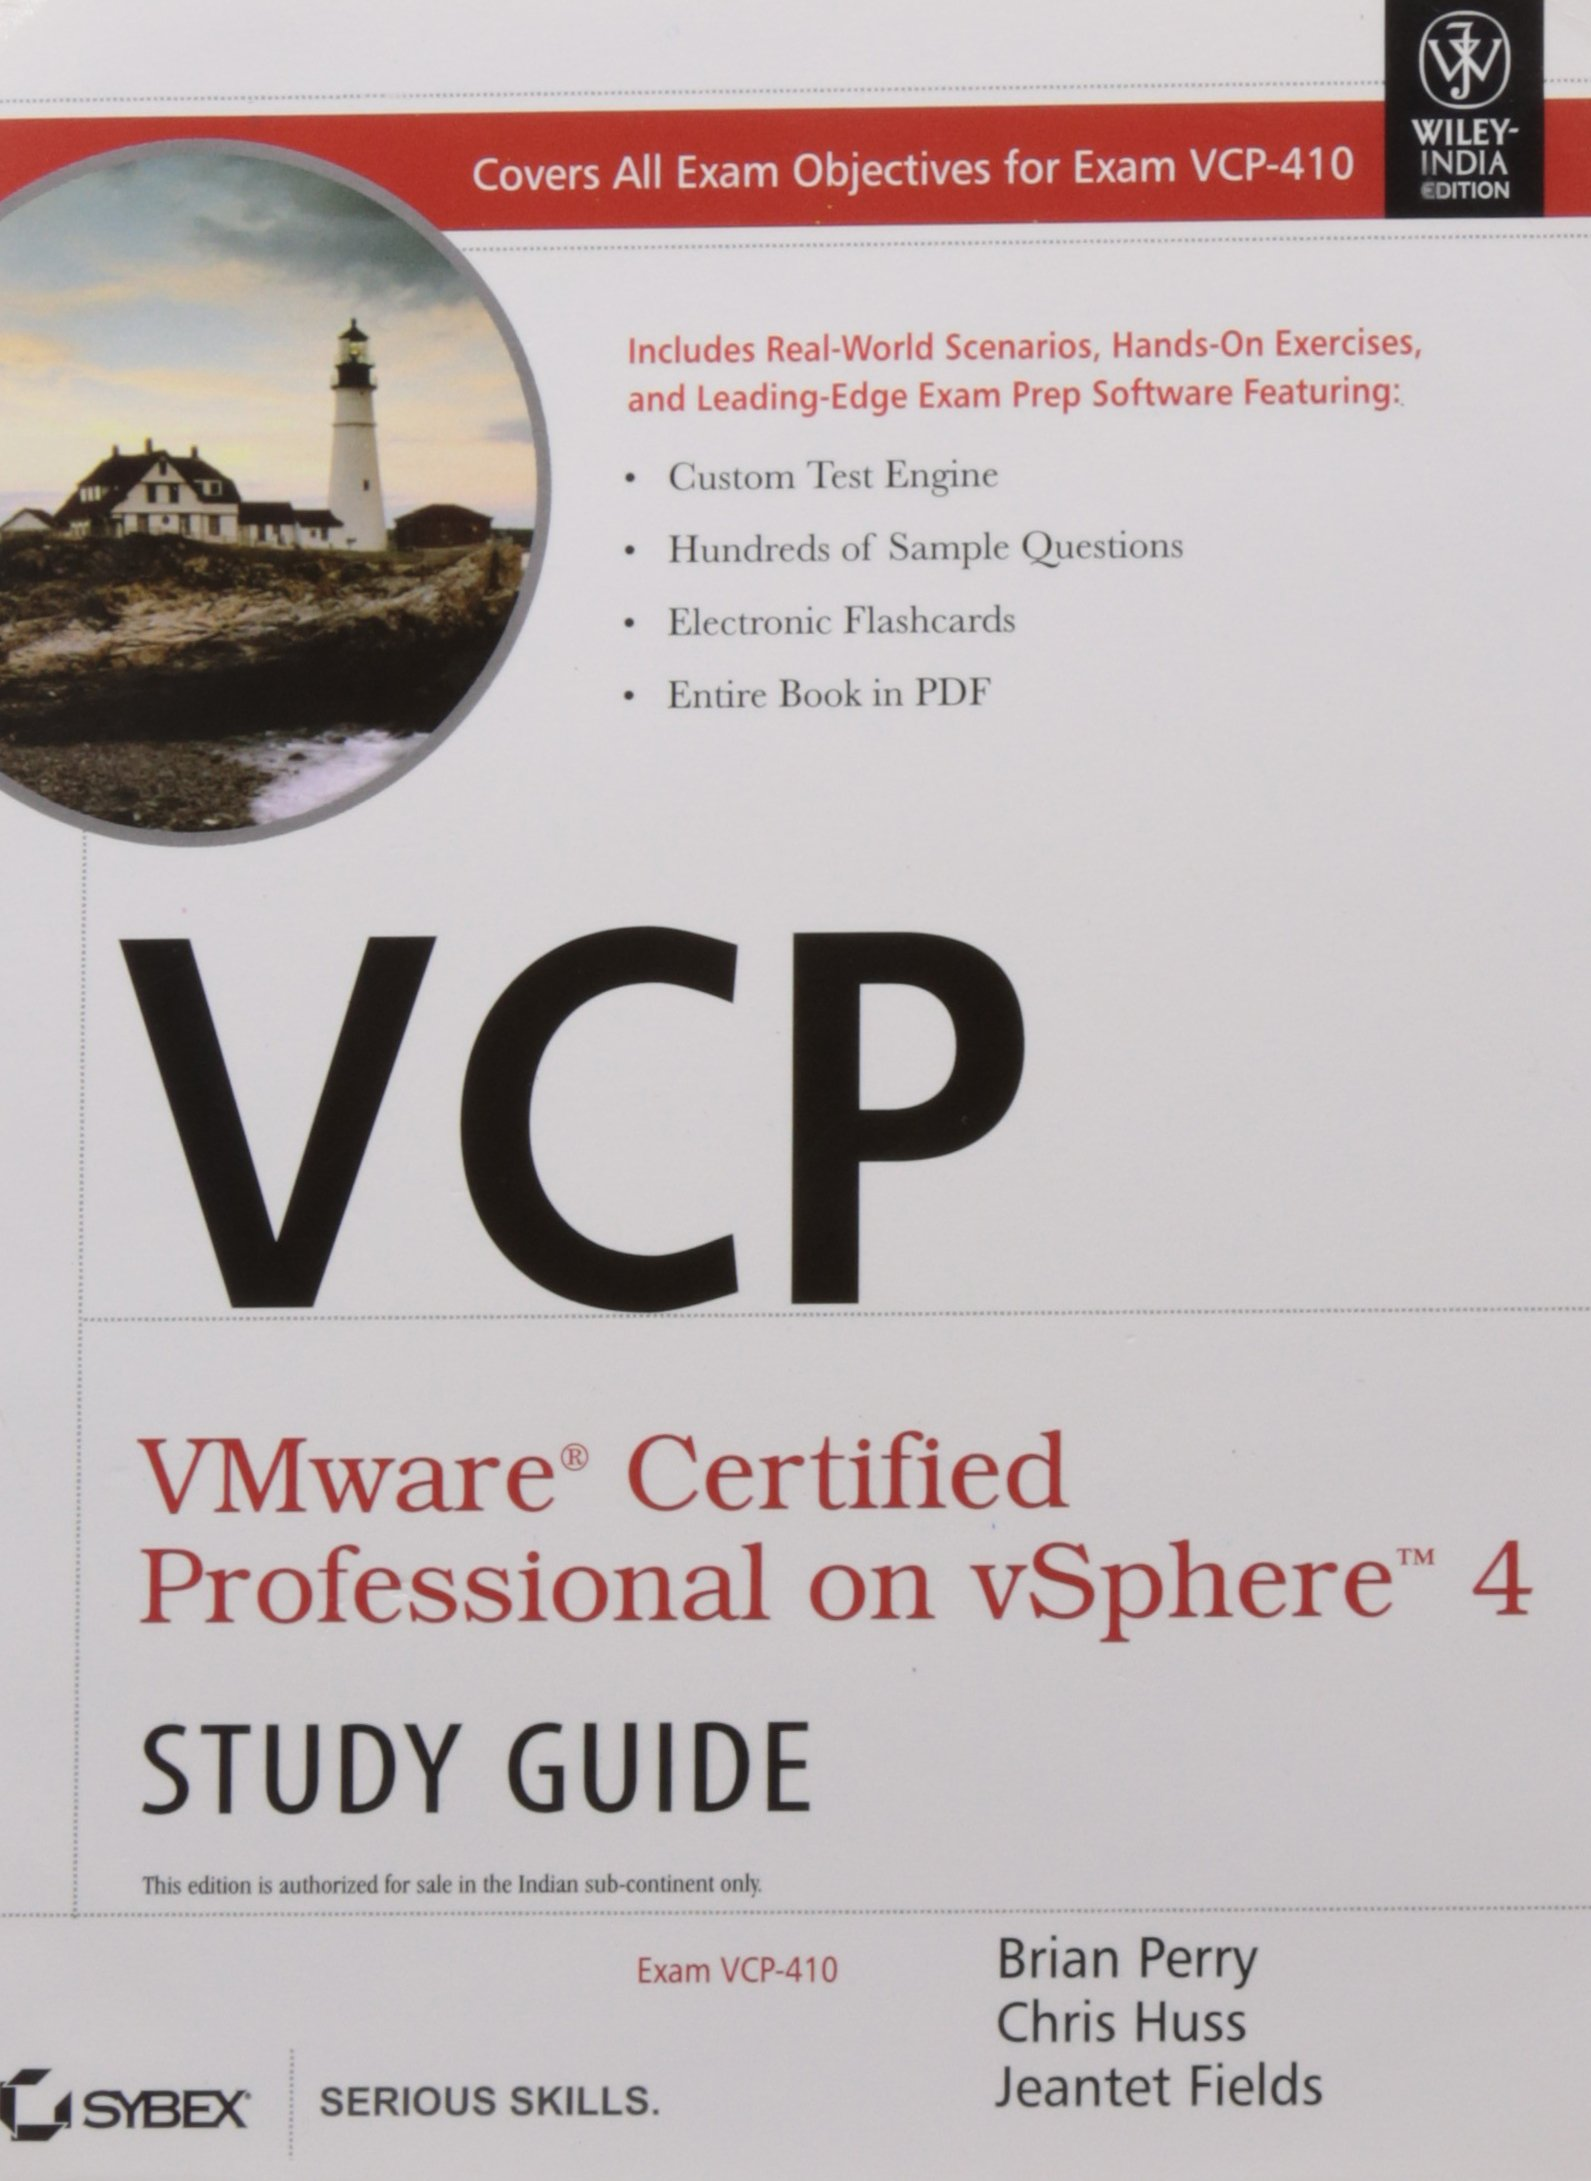 Inspirational photos of vcp certification business cards and vcp certification lovely vcp vmware certified professional on vsphere 4 study guide xflitez Images